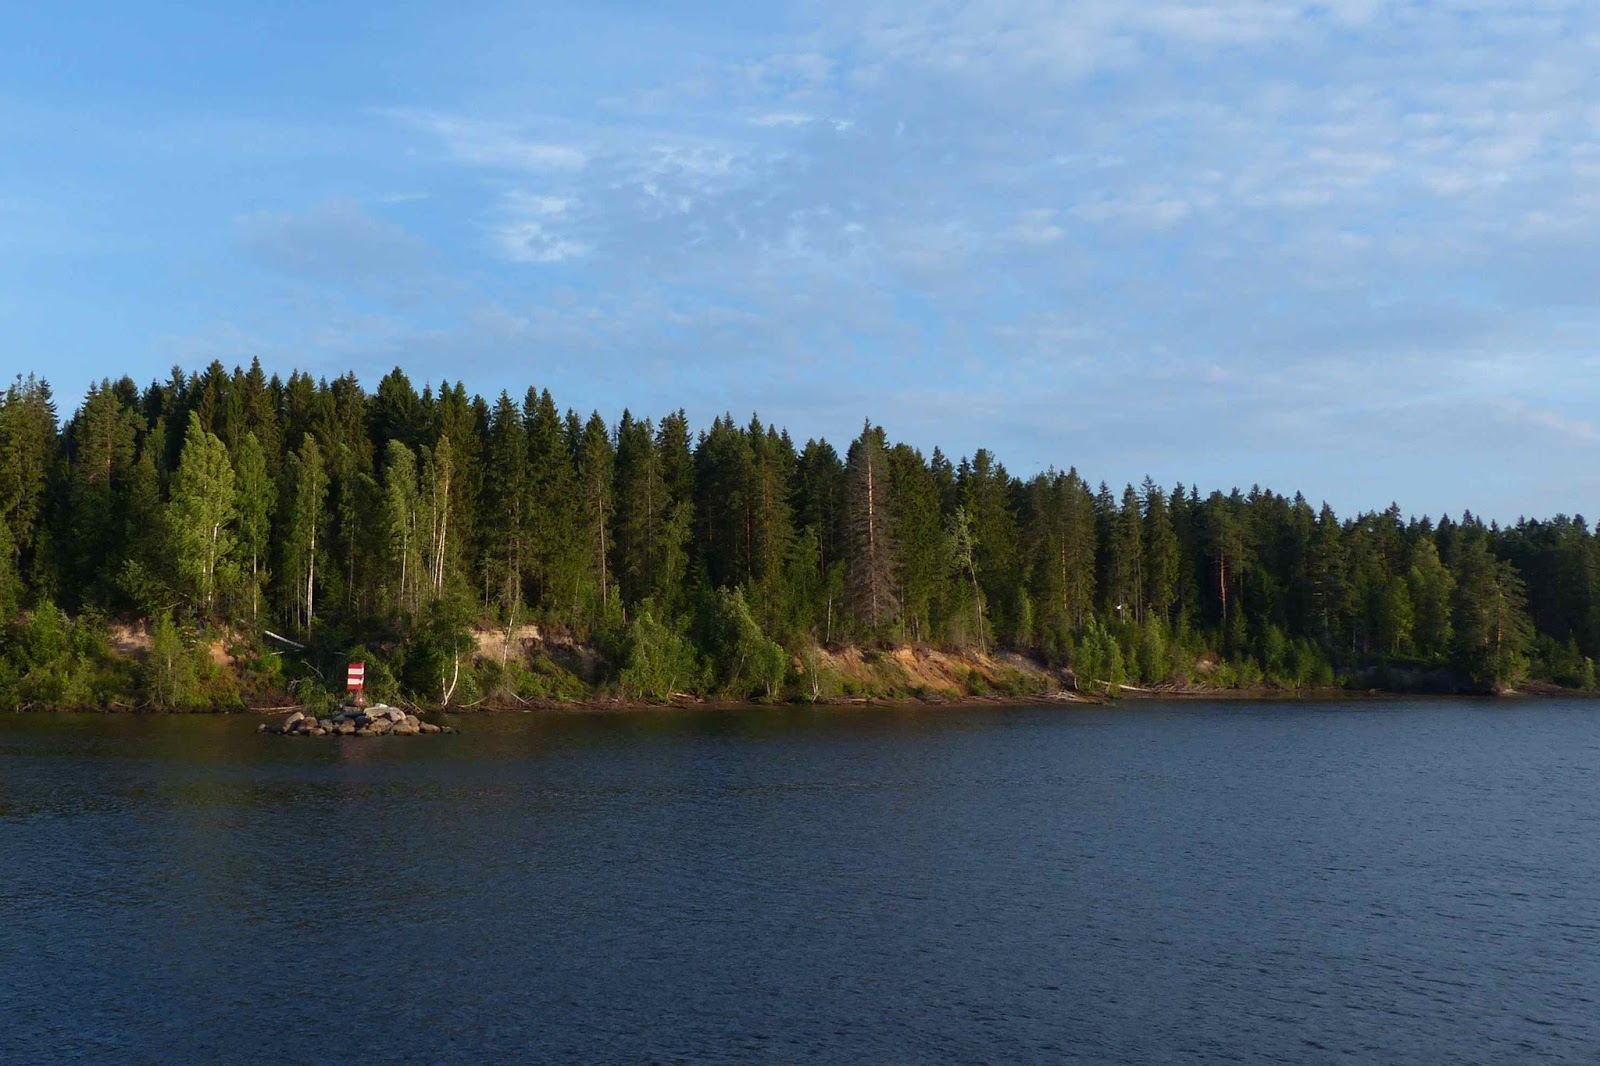 Russian Riverboat Cruise Along The Lakes Rivers And